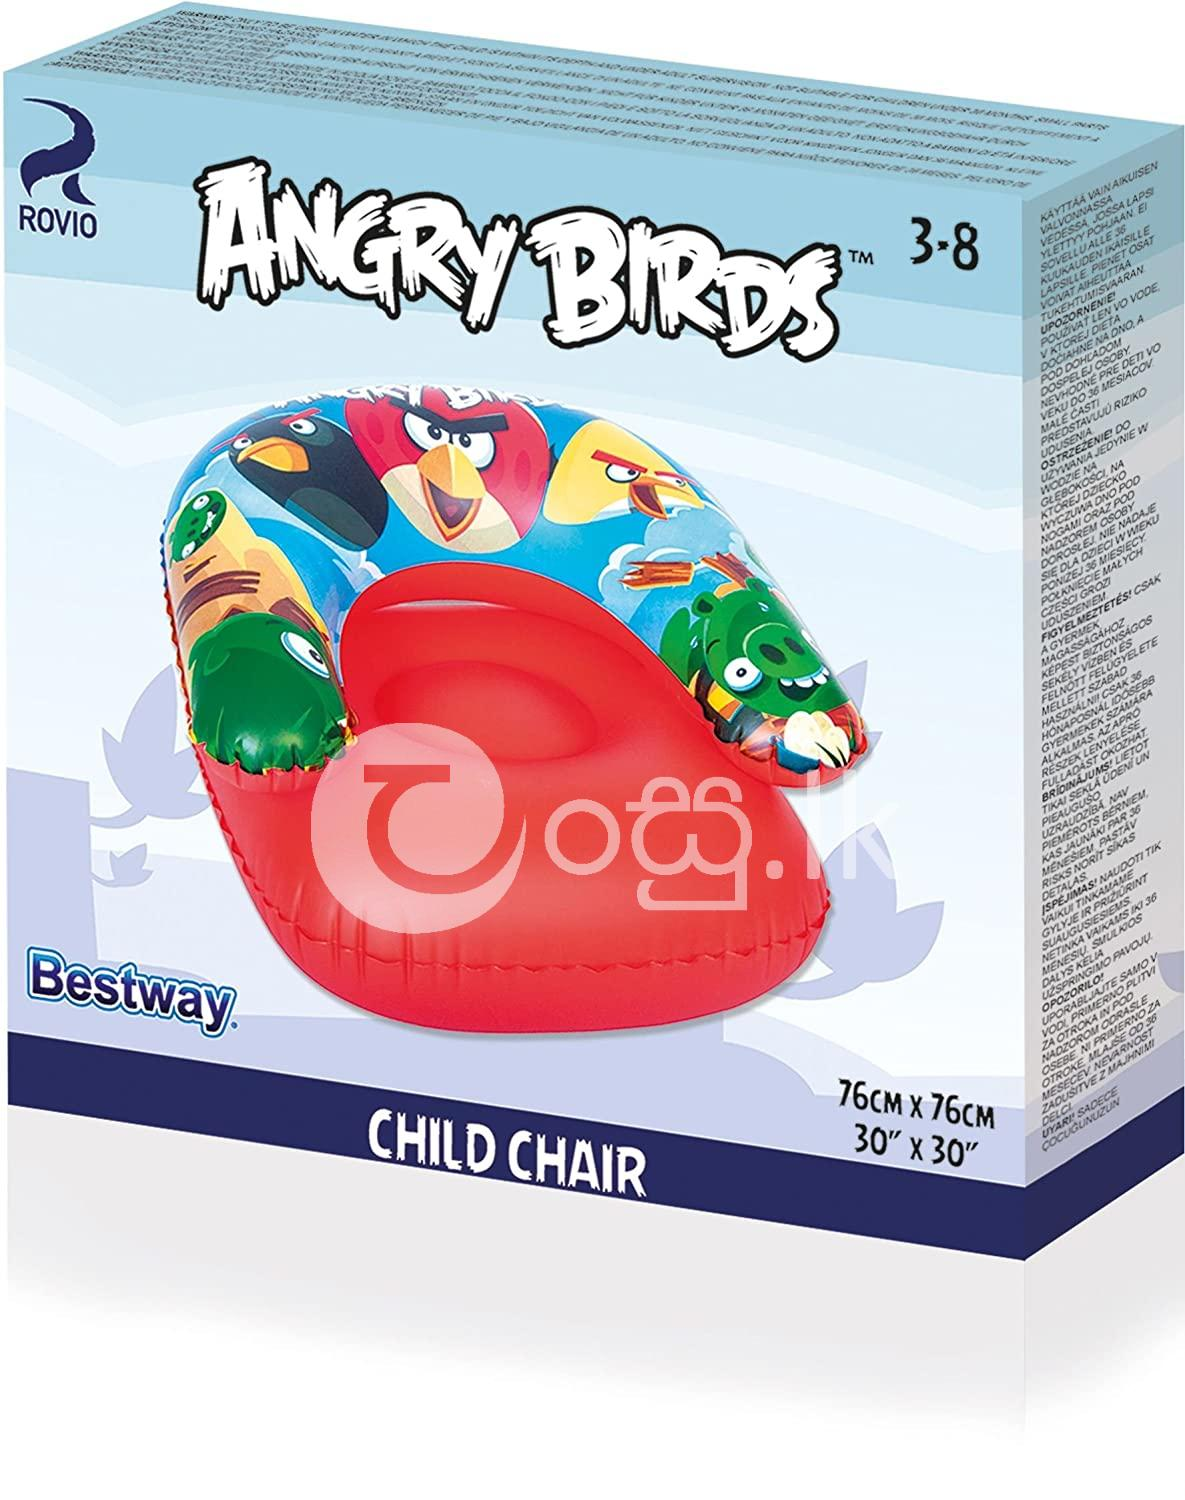 Angry Bird Child Chair Children items in Colombo 15